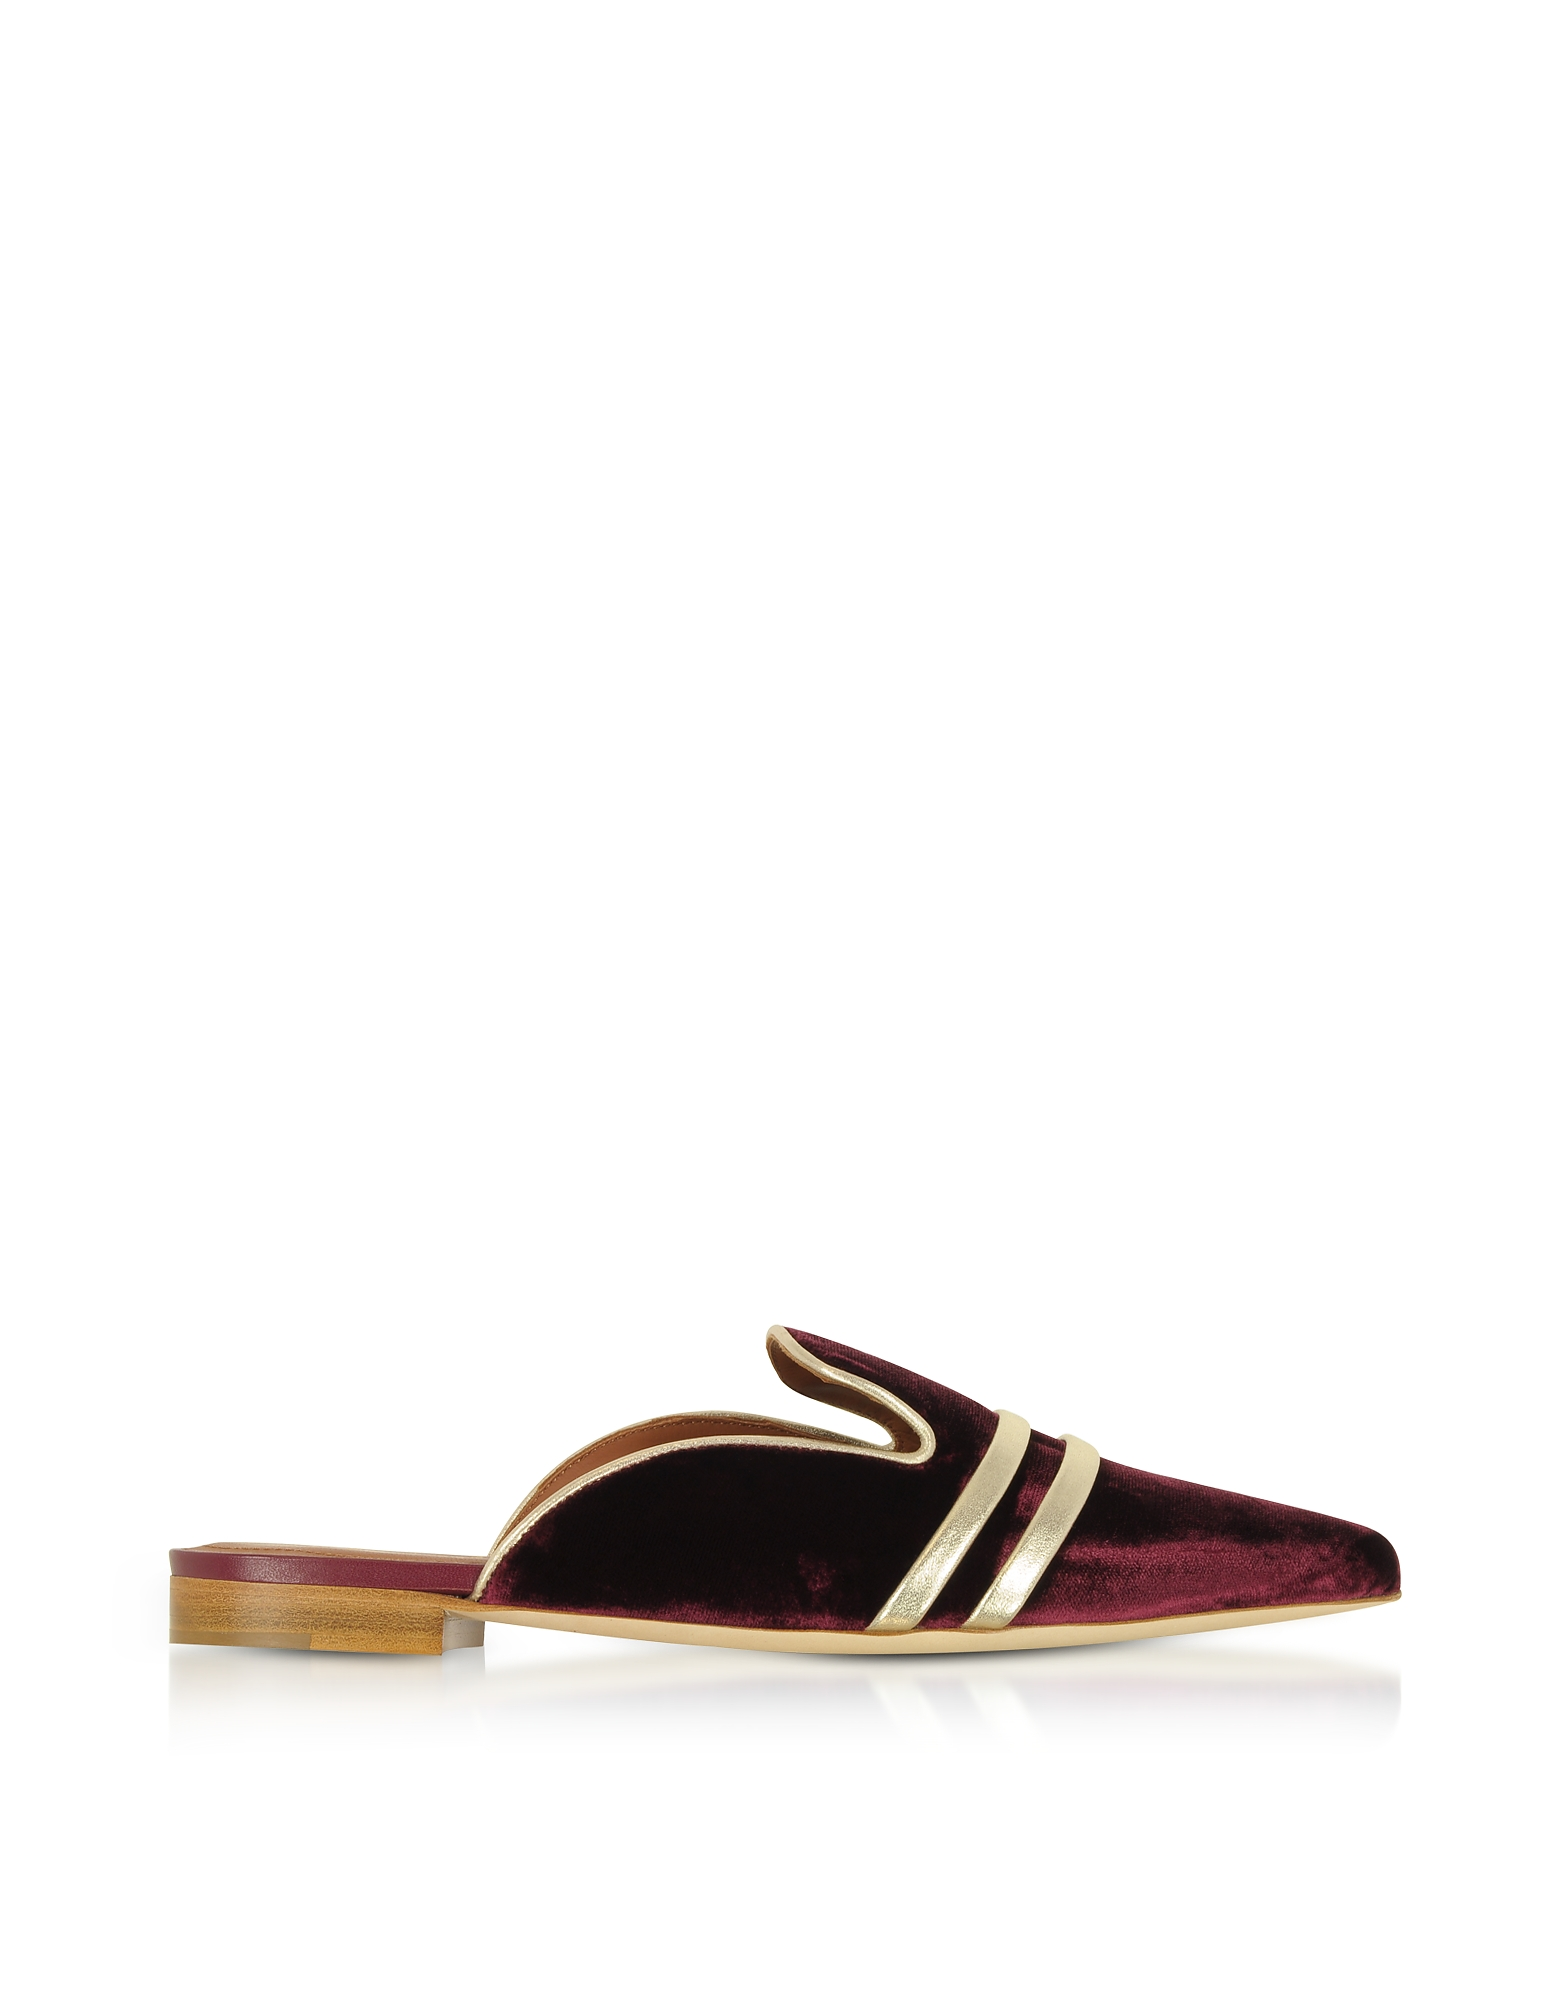 Malone Souliers Shoes, Hermione Burgundy Velvet and Platinum Nappa Flat Mules